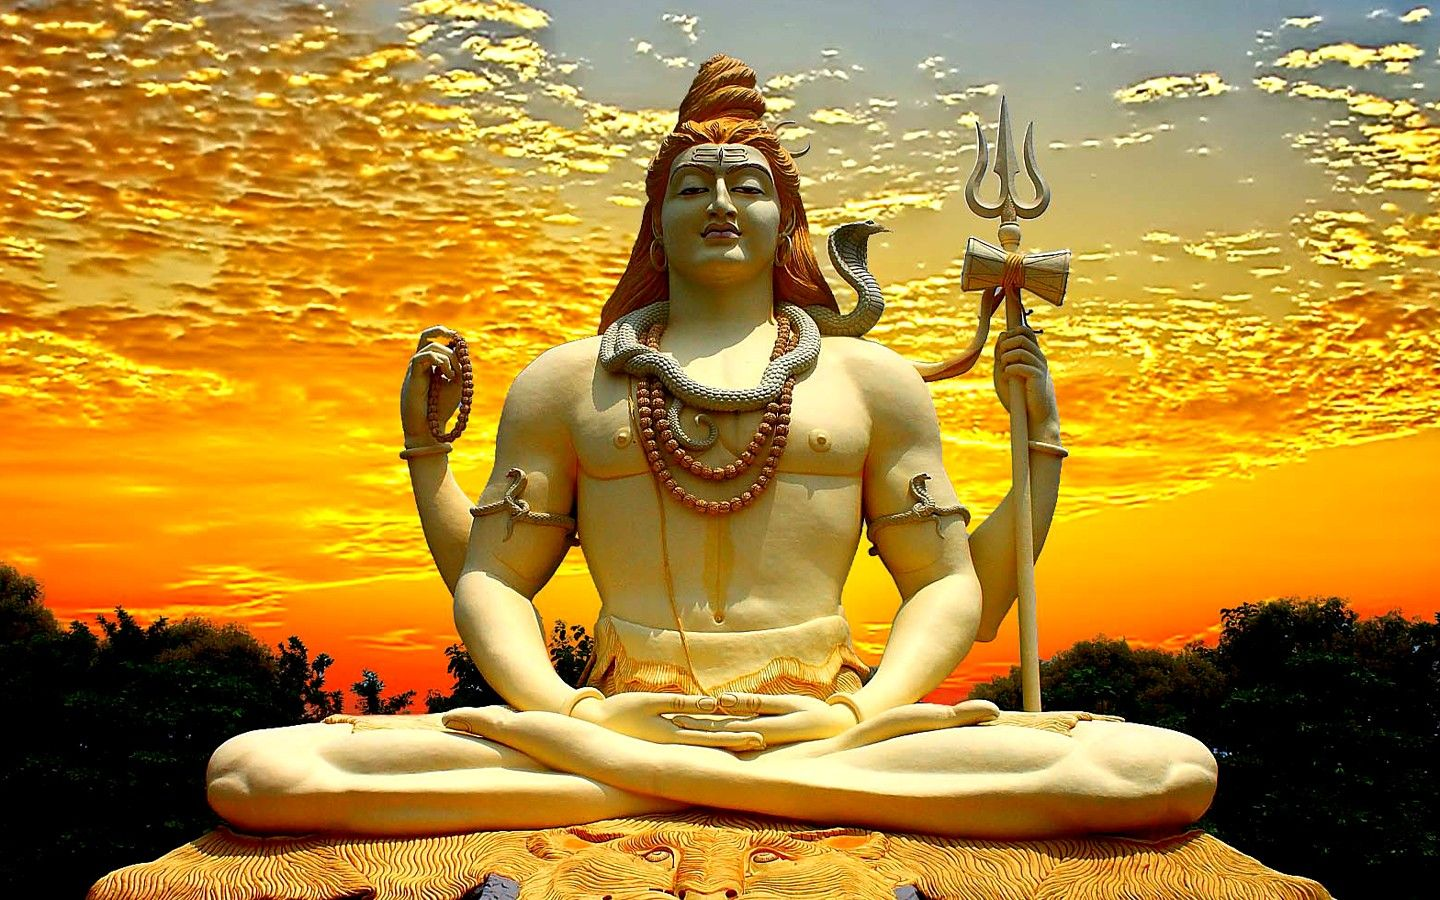 Lord Shiva Desktop Wallpapers Hd: Lord Shiva Images, Lord Shiva Photos & HD Wallpapers Free